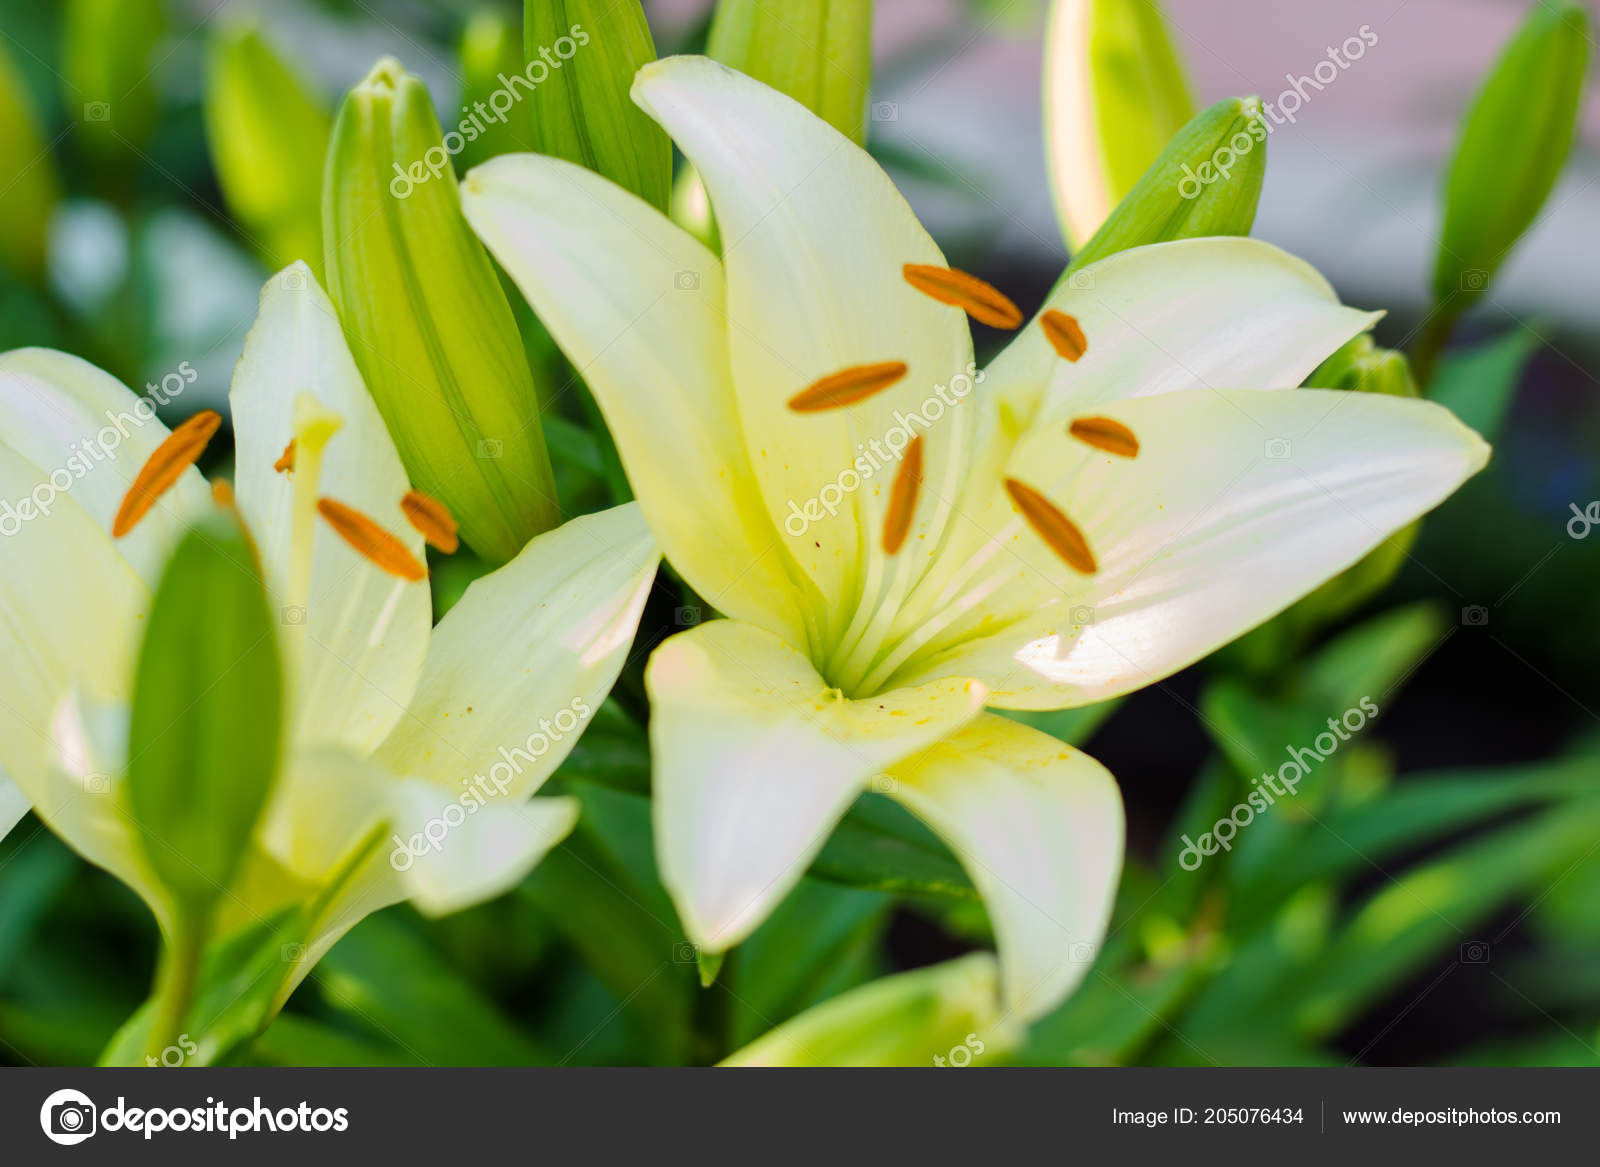 Beautiful Flowers White Lily Green Garden Bouquets Lilies Stock